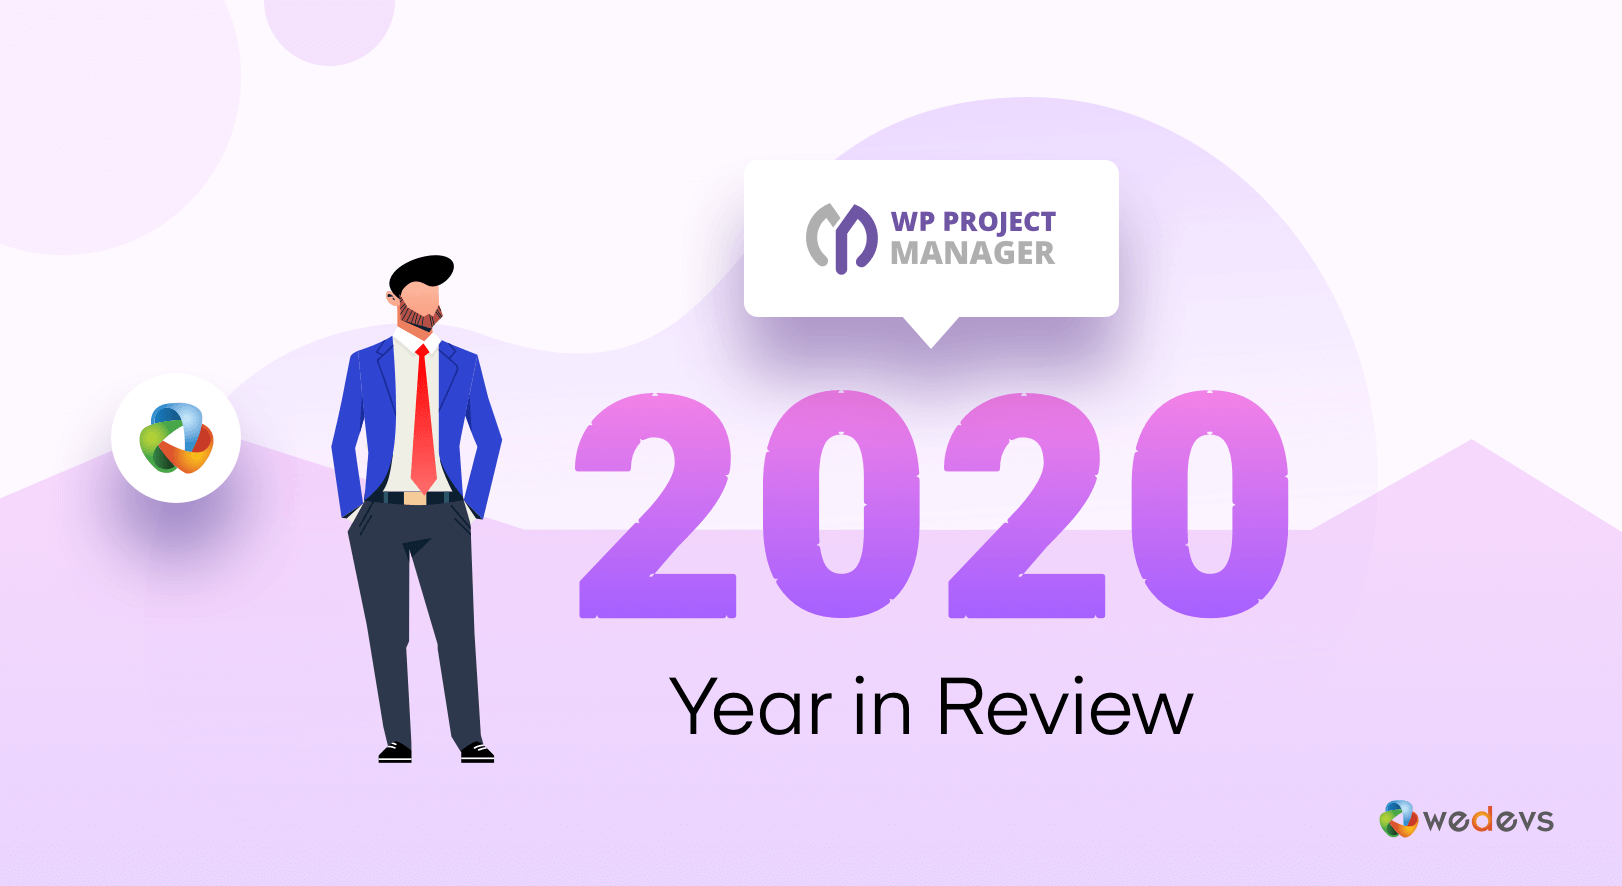 WP Project Manager Pro Year in Review 2020: Looking for Something Great Ahead